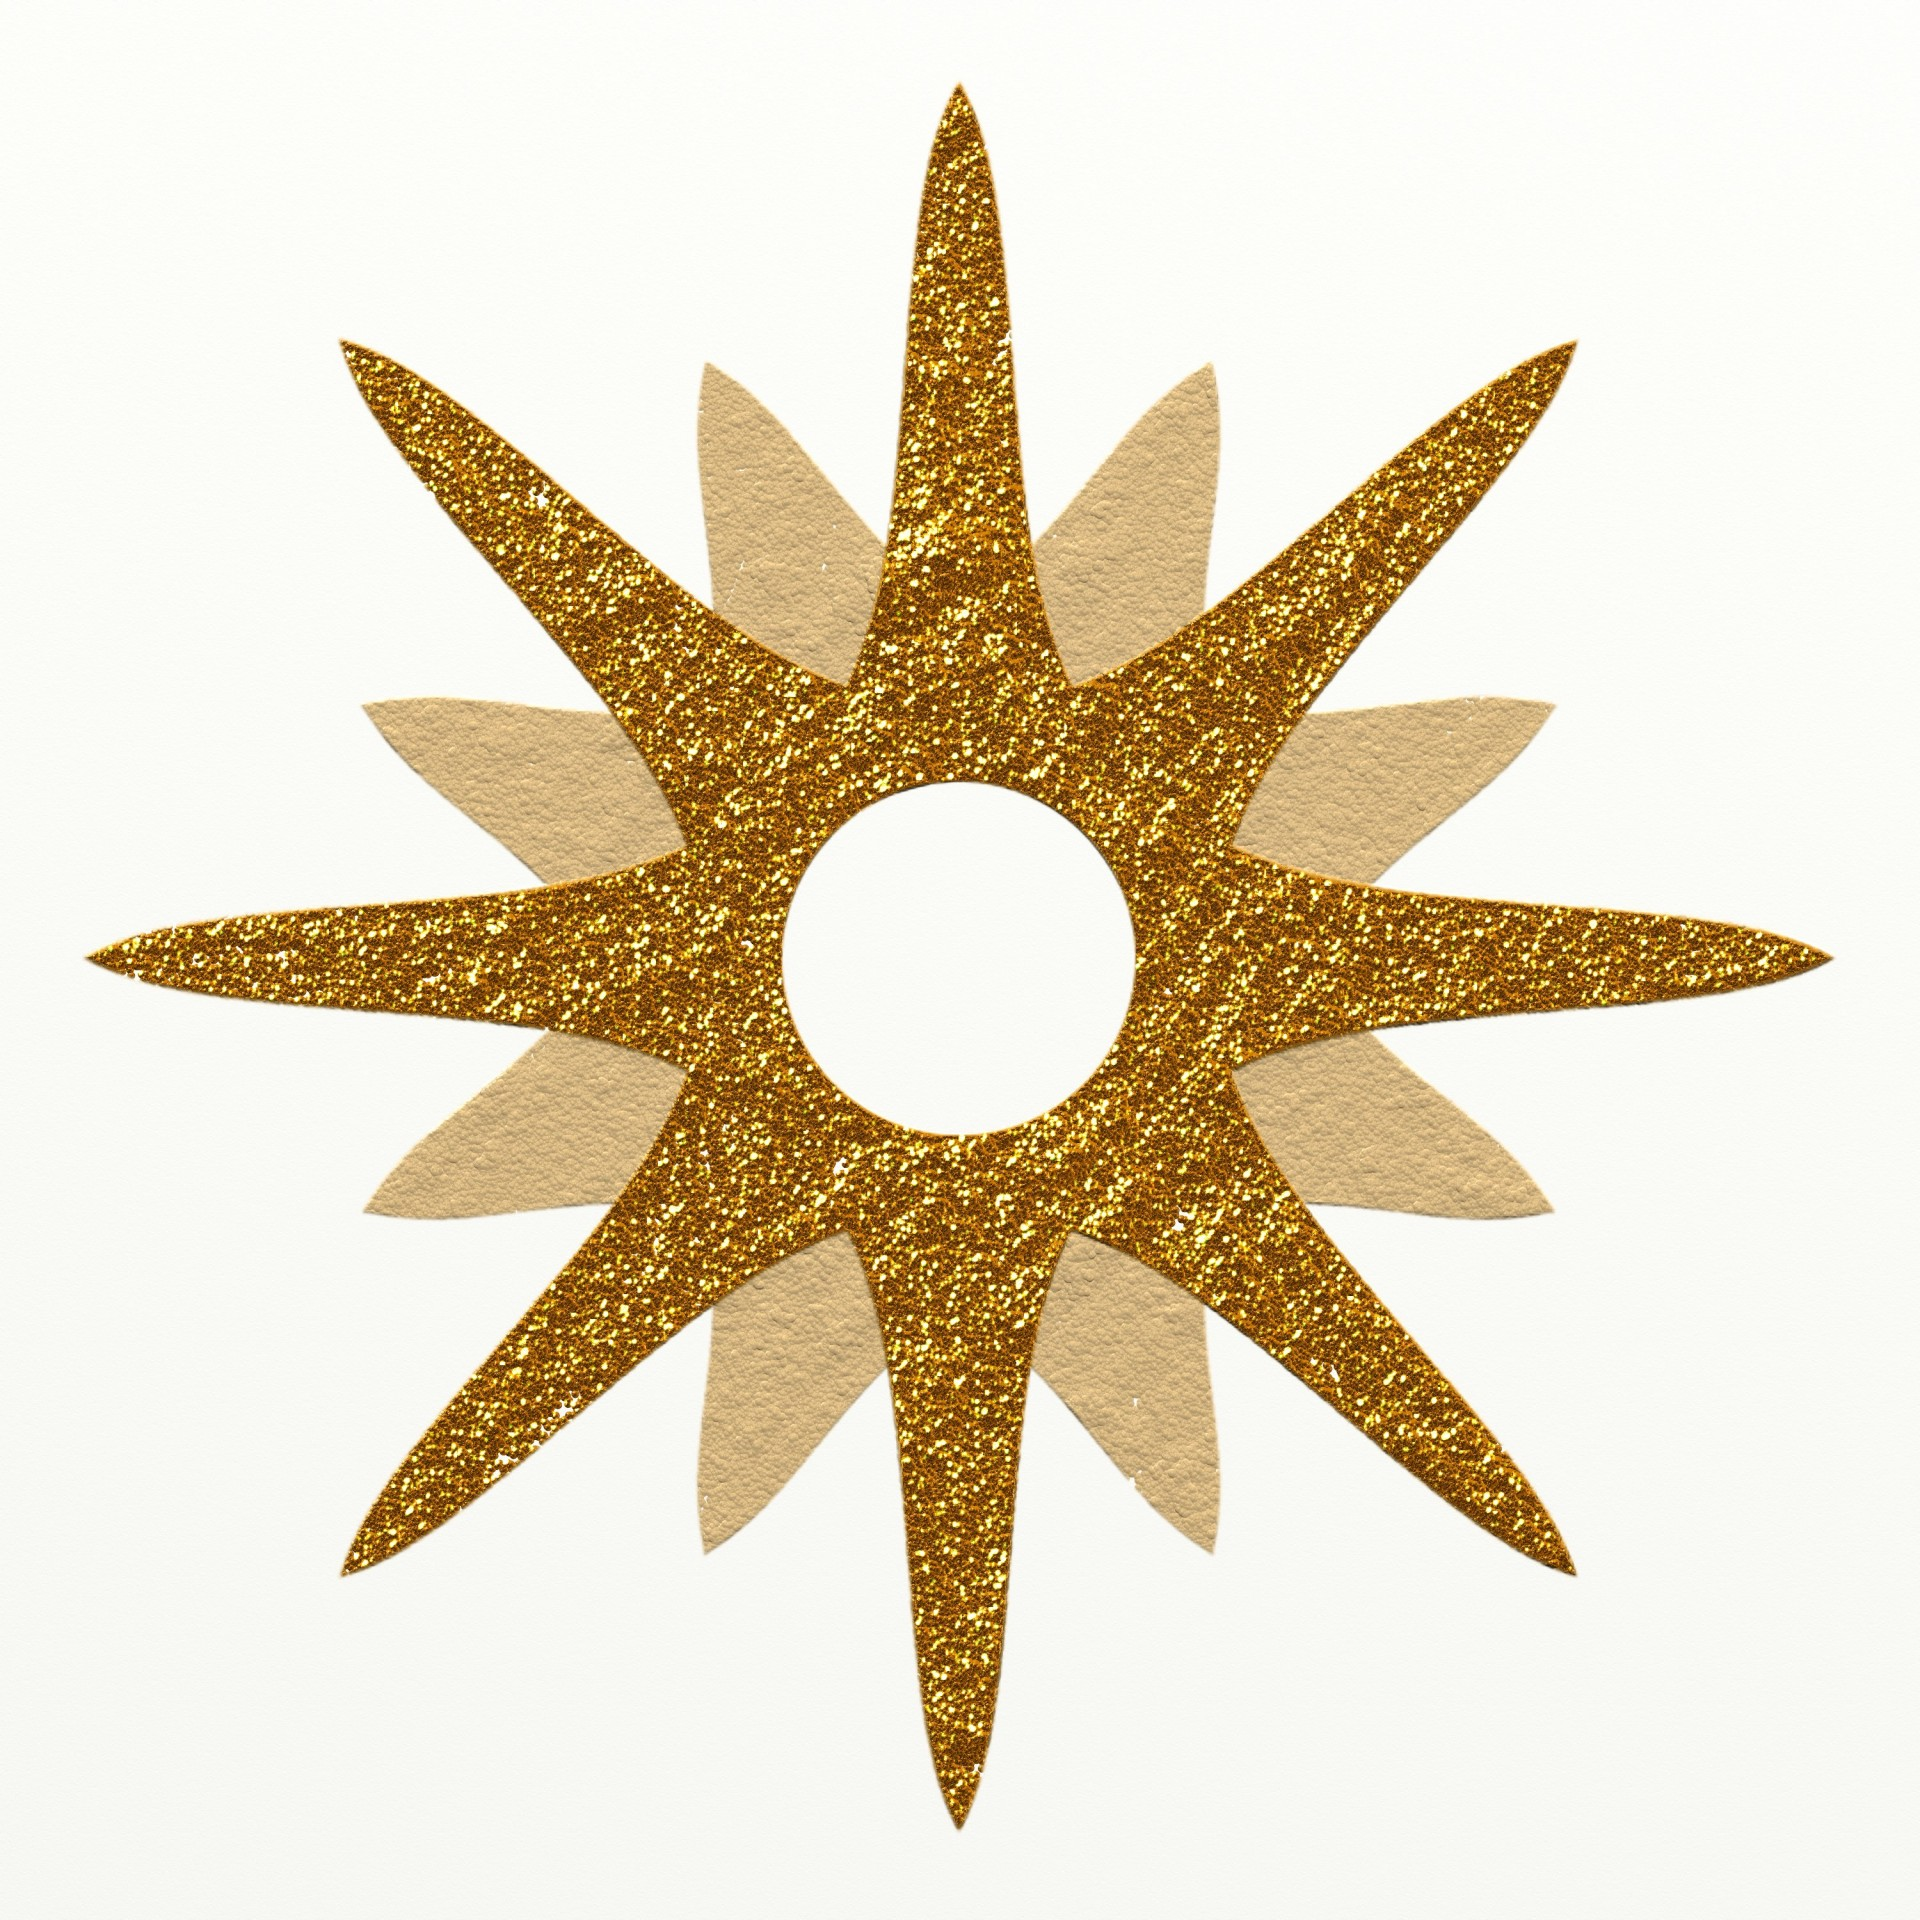 1920x1920 Gold Star Clipart Free Stock Photo